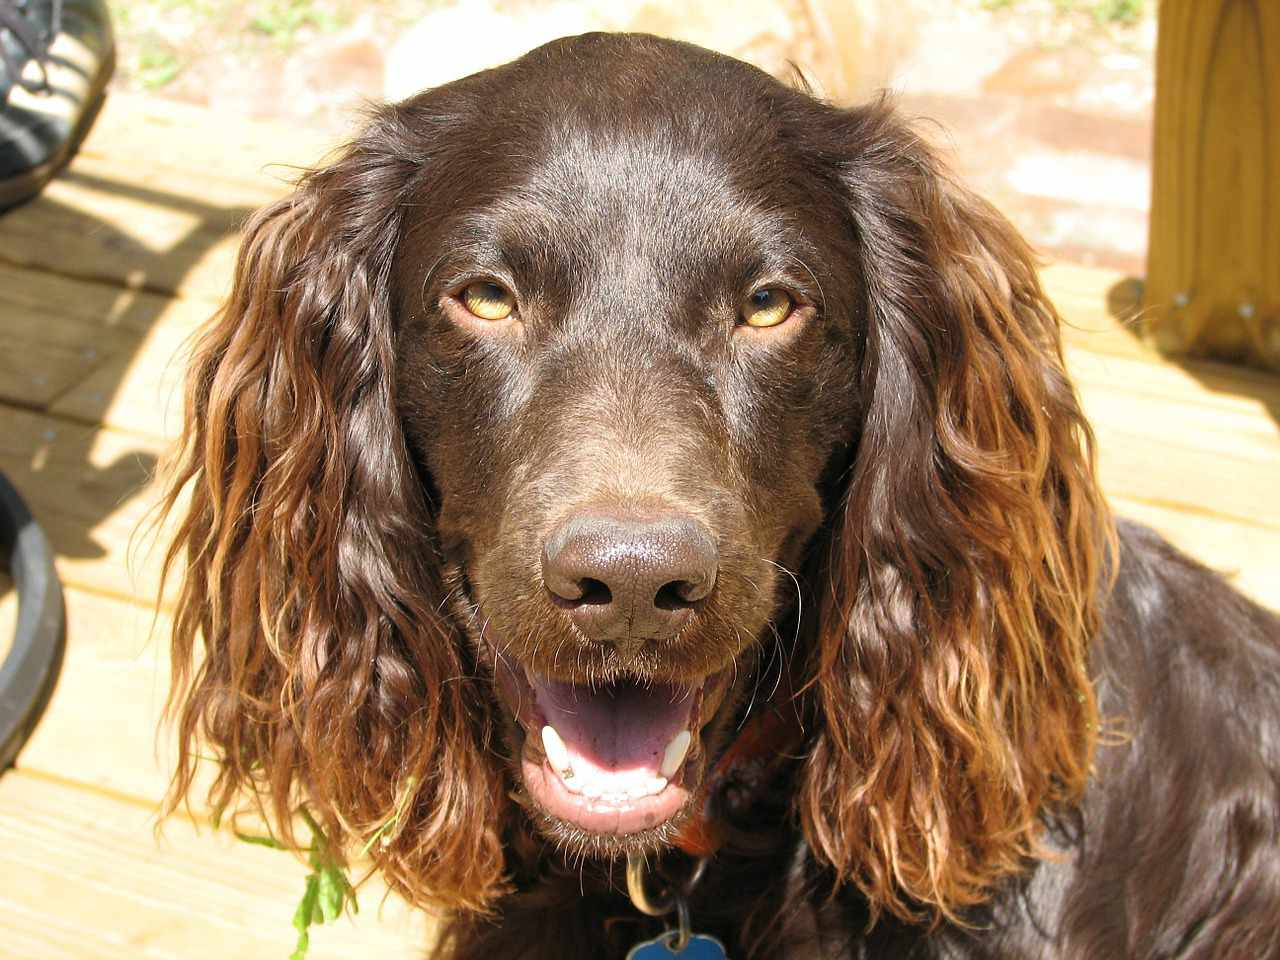 Boykin Spaniel sitting outside smiling up at camera.